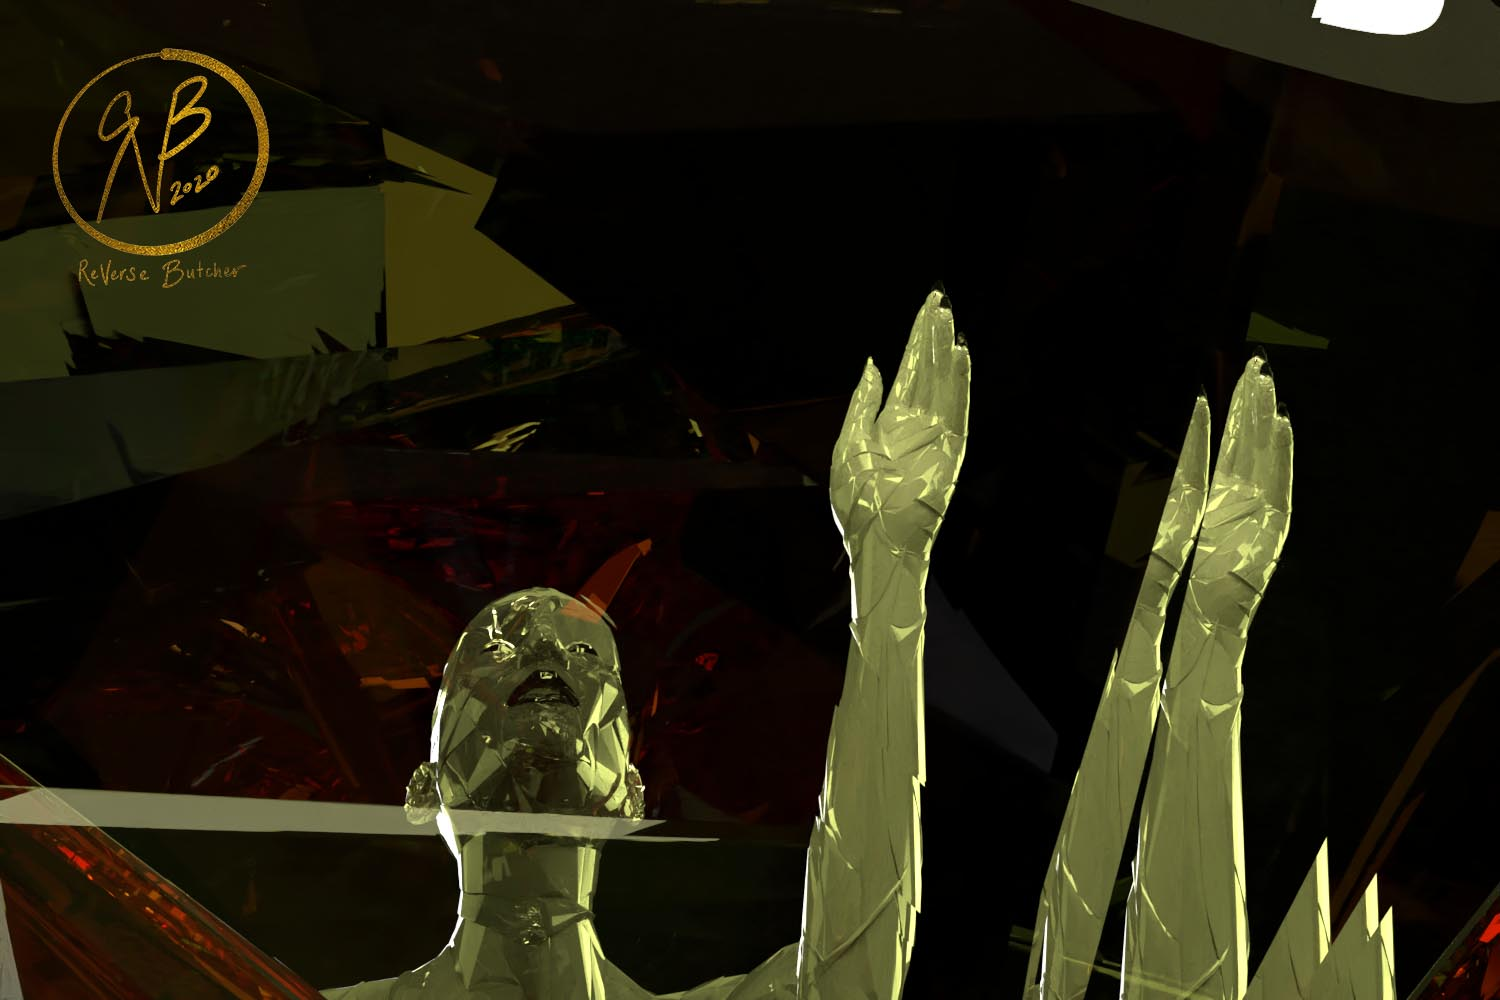 Electric Cathedral | Love/Quantum | VR Art rVb | Proof of Concept Image